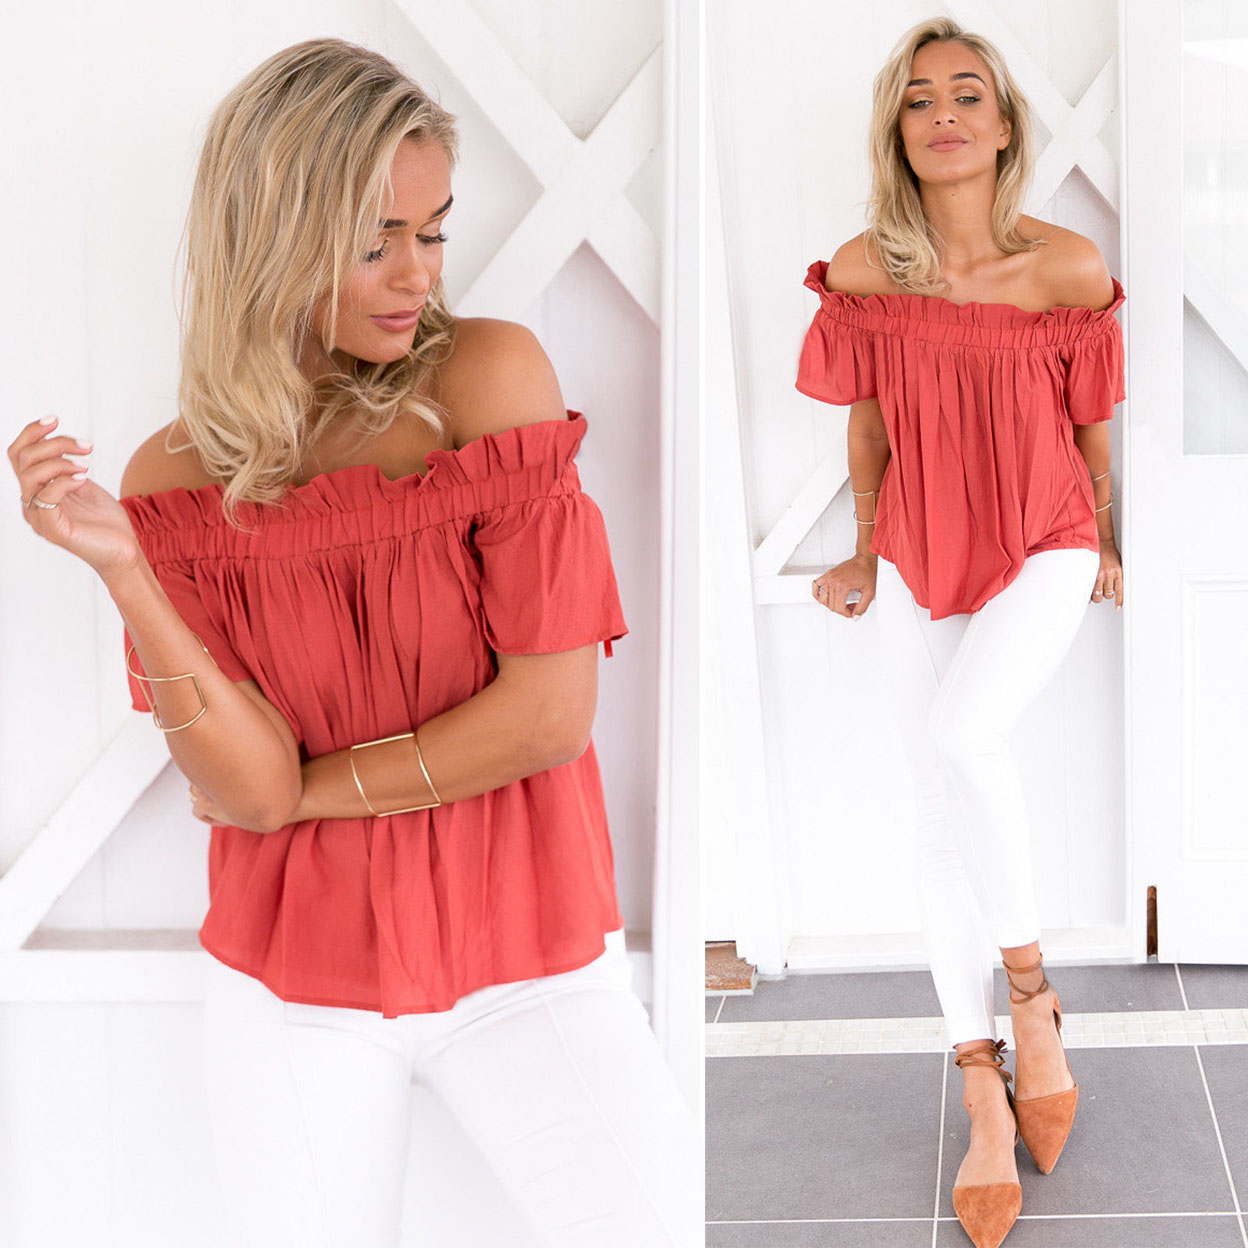 Off Shoulder Ruffle Neckline Top Blouse - Red, Small 5af15e651a2f720fb870afb3